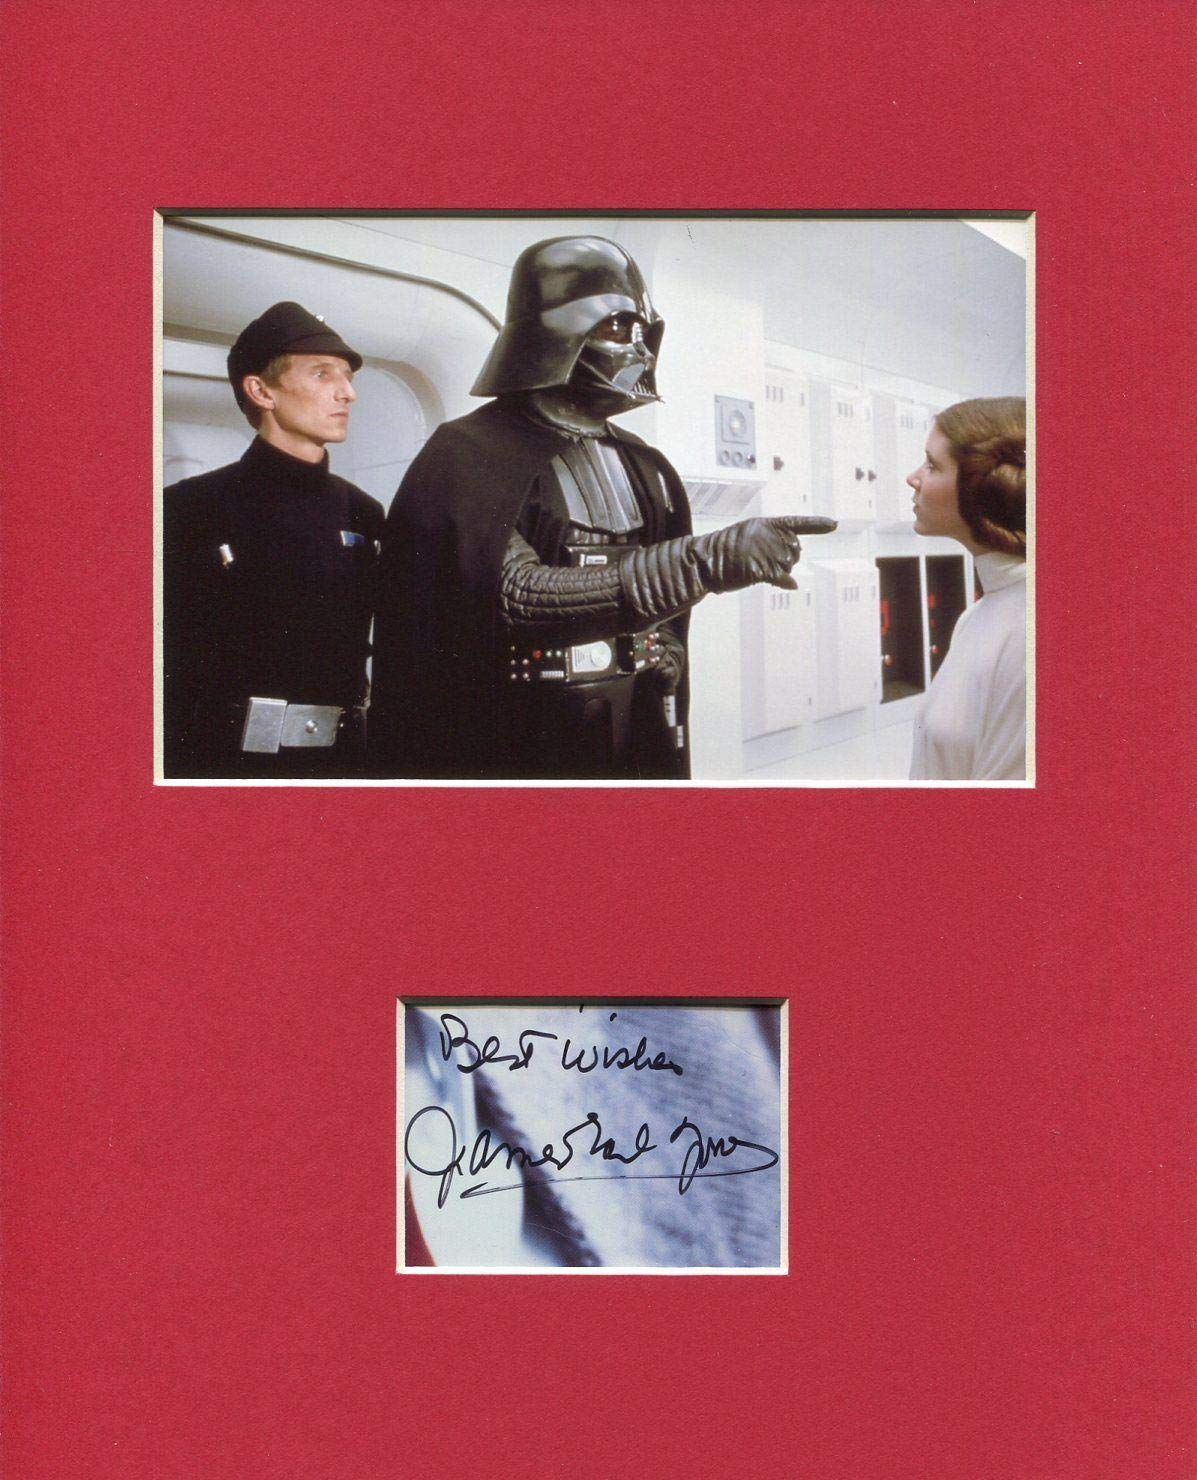 James Earl Jones Rare Star Wars Darth Vader Voice Signed Autograph Photo Display HollywoodMemorabilia